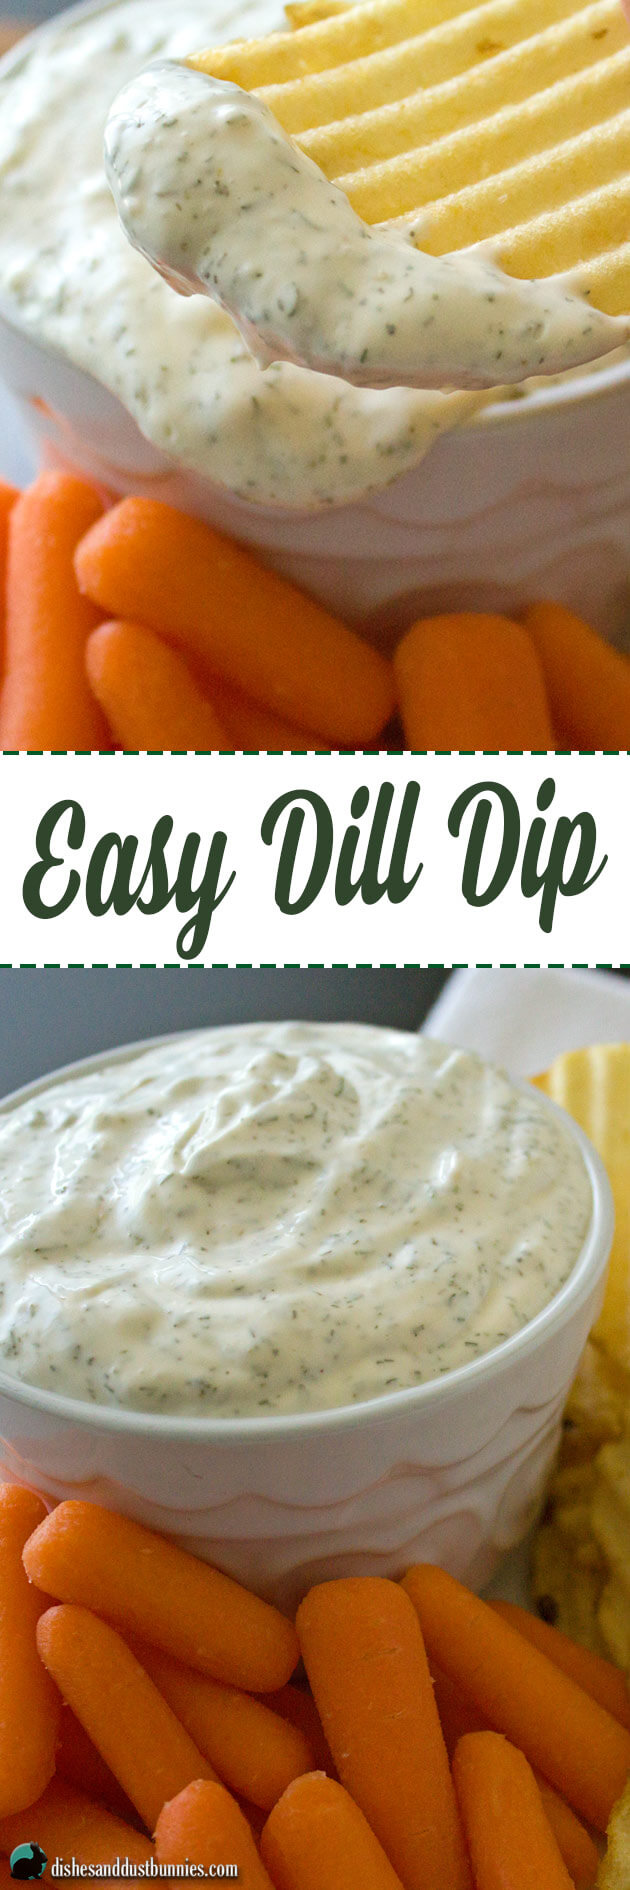 Easy Dill Dip from dishesanddustbunnies.com